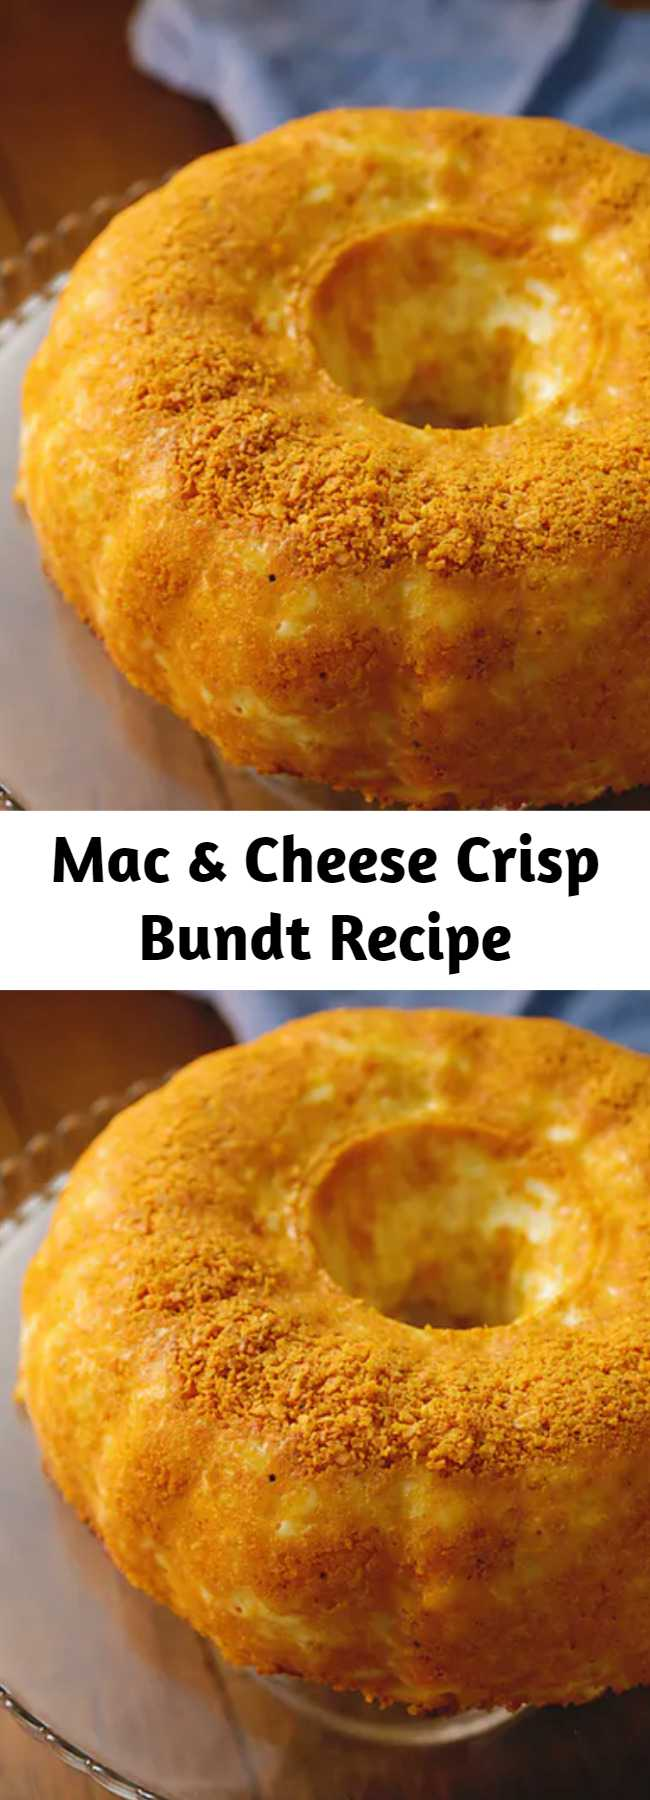 Mac & Cheese Crisp Bundt Recipe - For all the savoury lovers out there, we've made your perfect birthday cake! Mac and cheese with an extra layer of cheese surrounded in a crispy Dorito shell... Talk about a perfect cake.